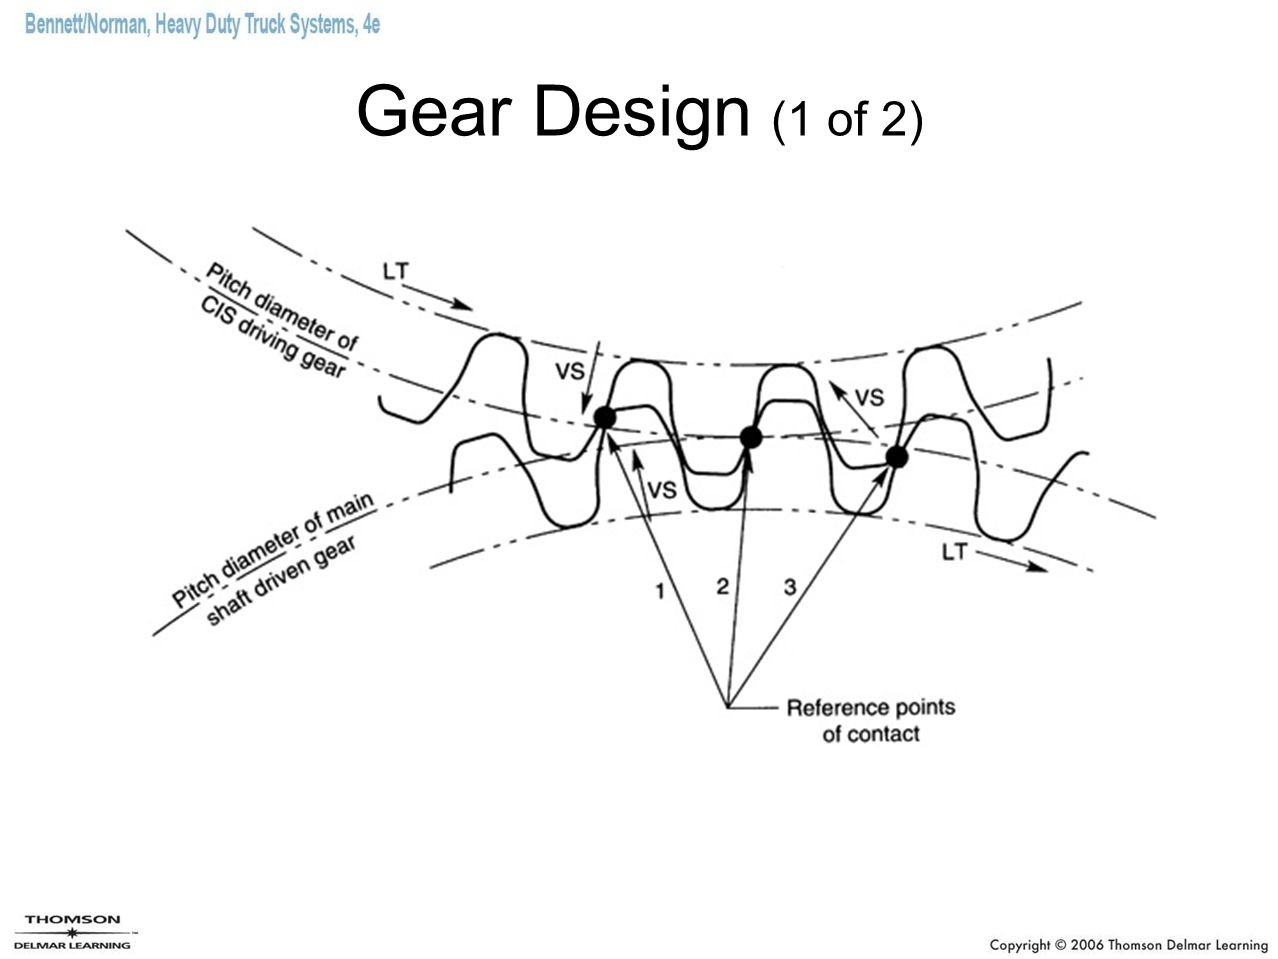 Gear Design (1 of 2) GEAR DESIGN